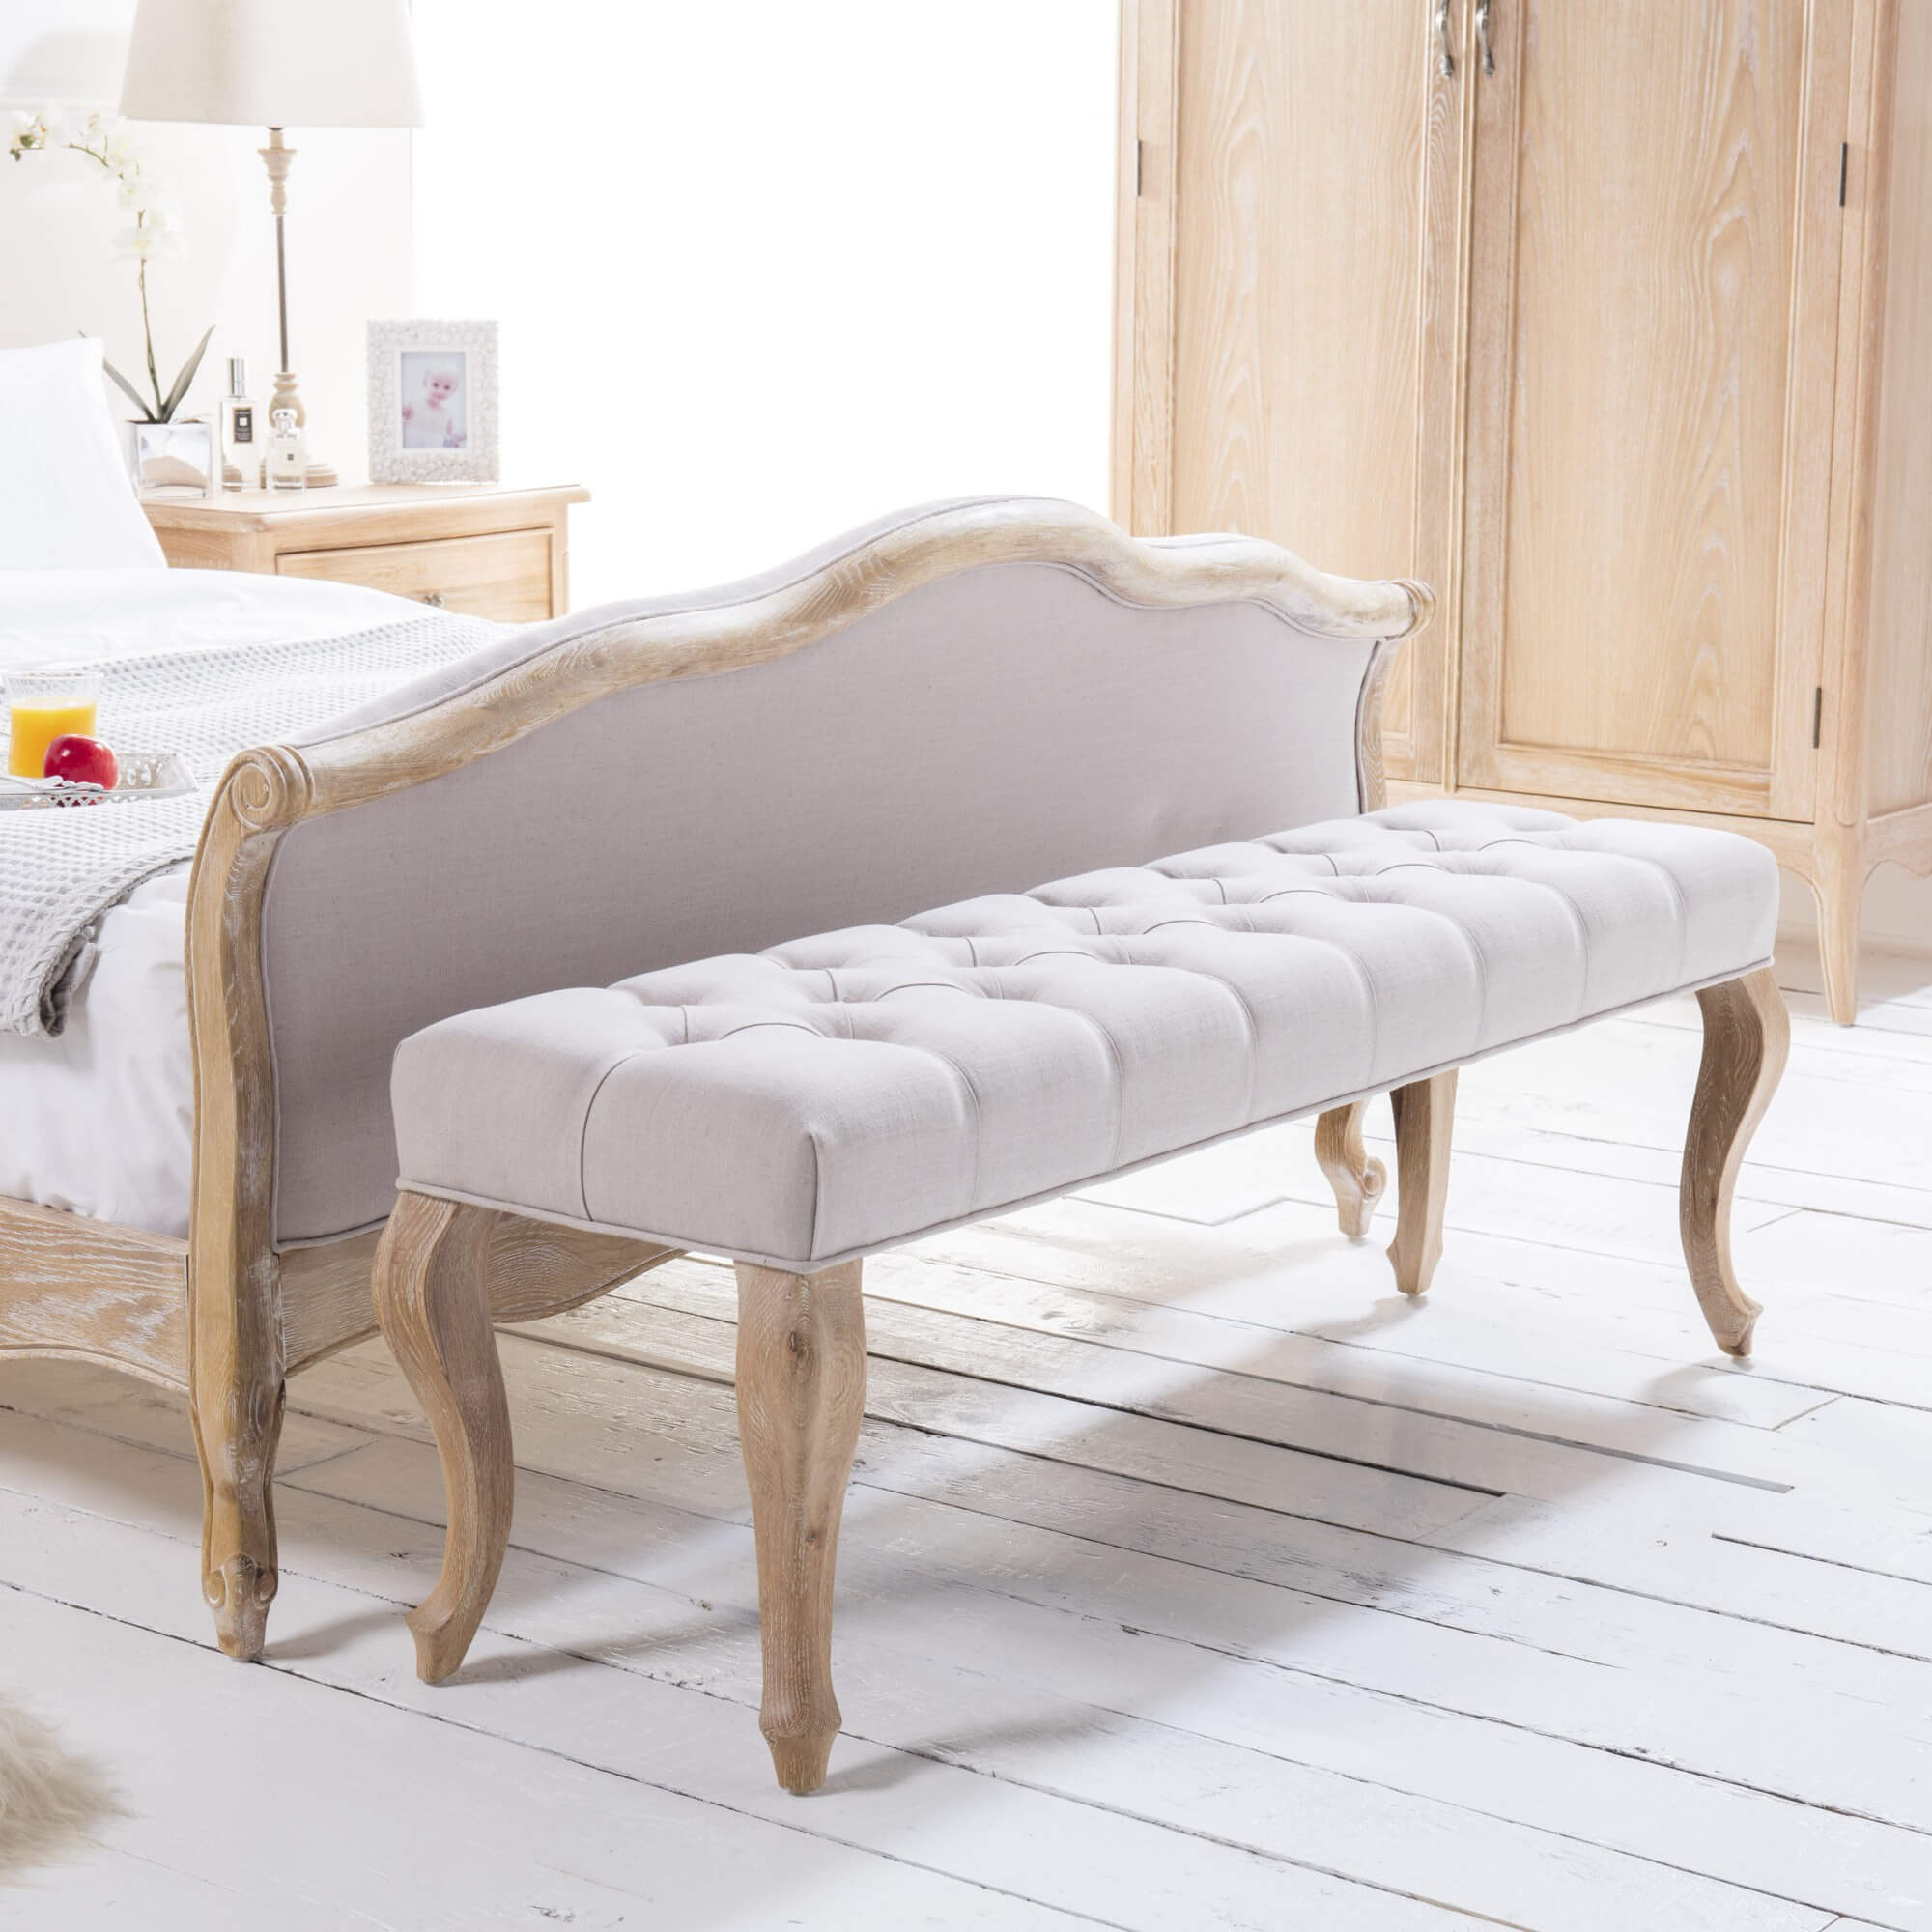 Q&As: What is the Bench at the End of a Bed Called?